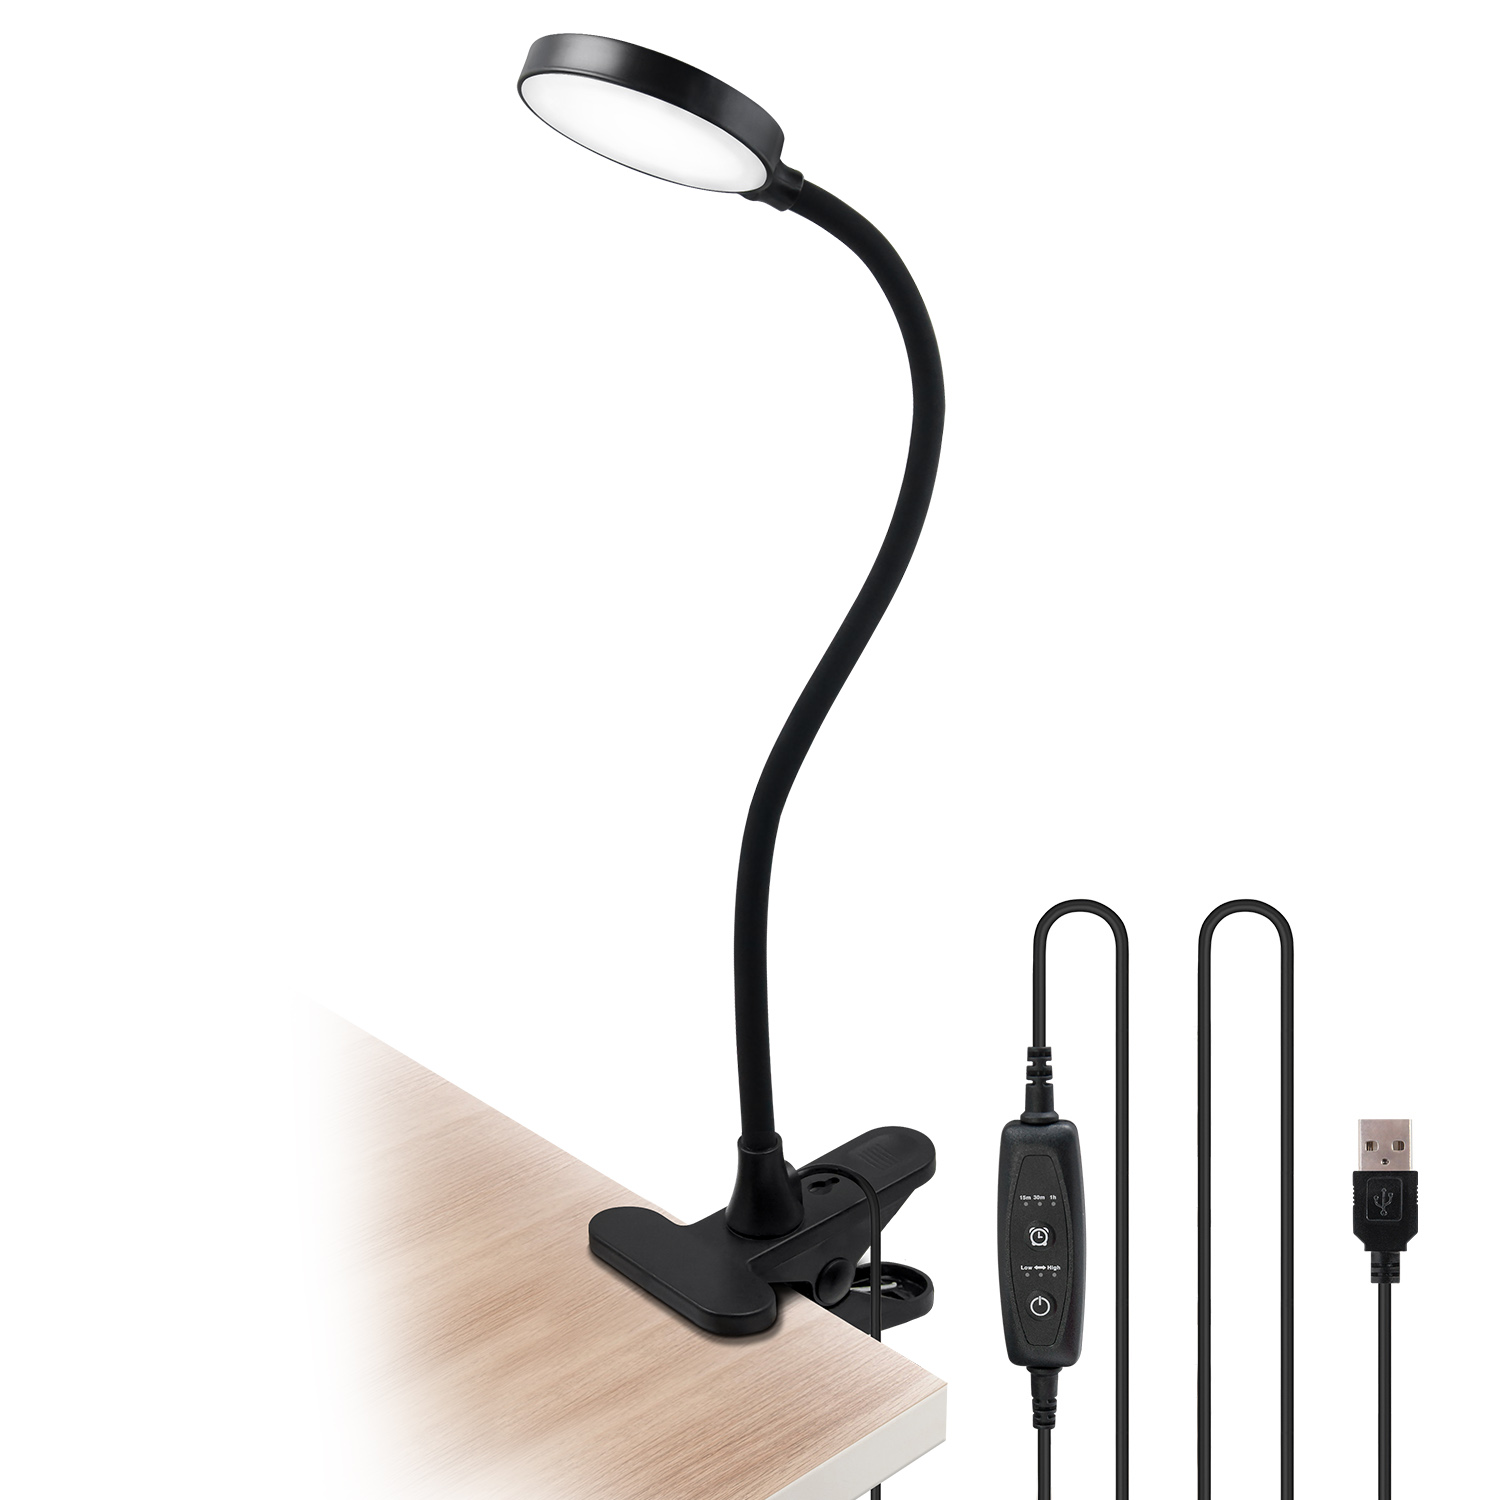 Usb Powered Black Dimmable 4w Led Table Light Desk Reading Lamp Laptop Light With Clamp Timer Function Flexible Gooseneck Eye Care Daylight